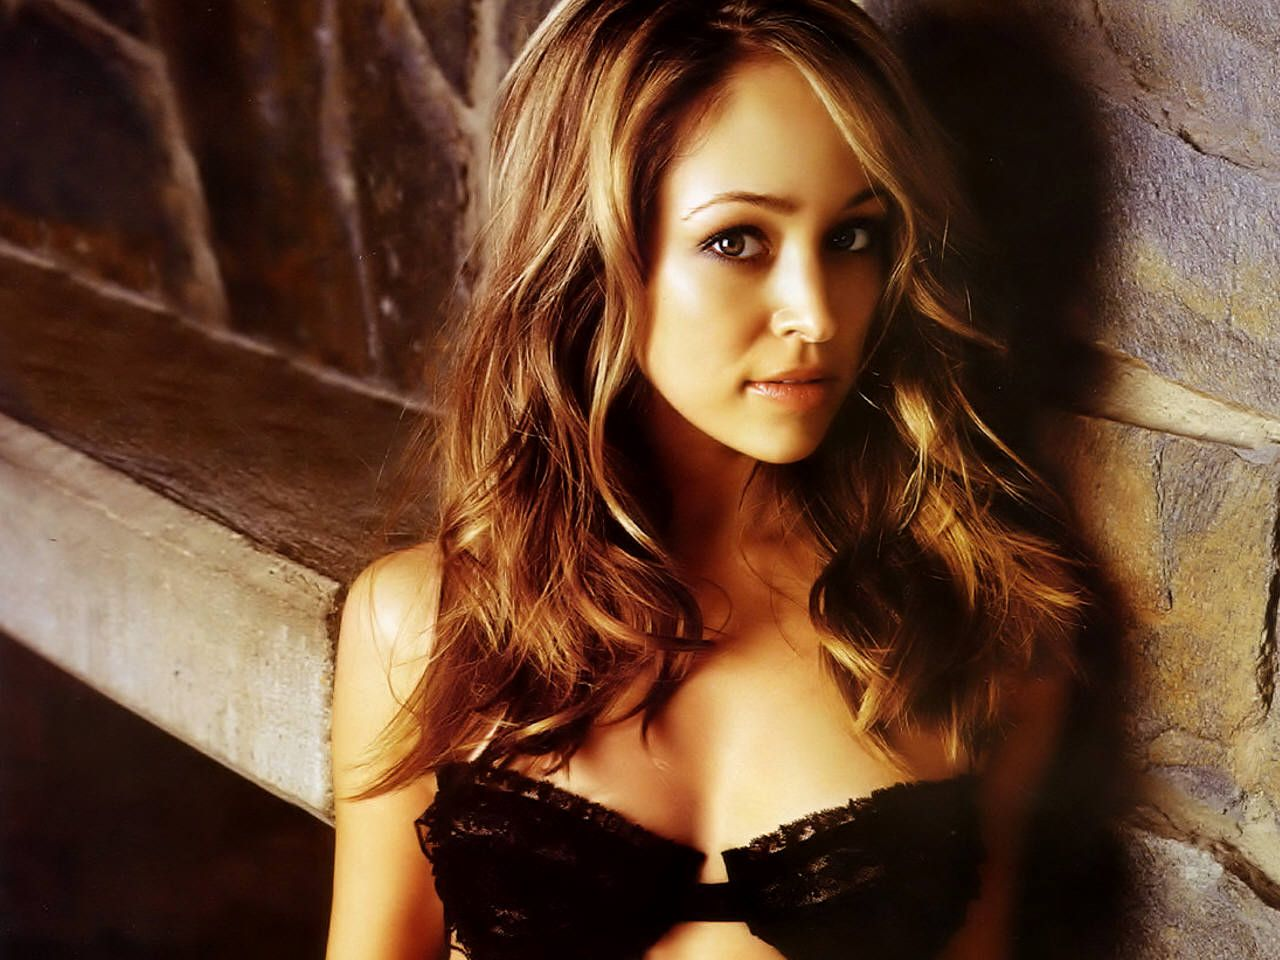 autumn reeser nationalityautumn reeser red alert 3, autumn reeser 2016, autumn reeser wiki, autumn reeser nationality, autumn reeser, autumn reeser imdb, autumn reeser instagram, autumn reeser 2015, autumn reeser entourage, autumn reeser tumblr, autumn reeser the bannen way, autumn reeser hallmark movies